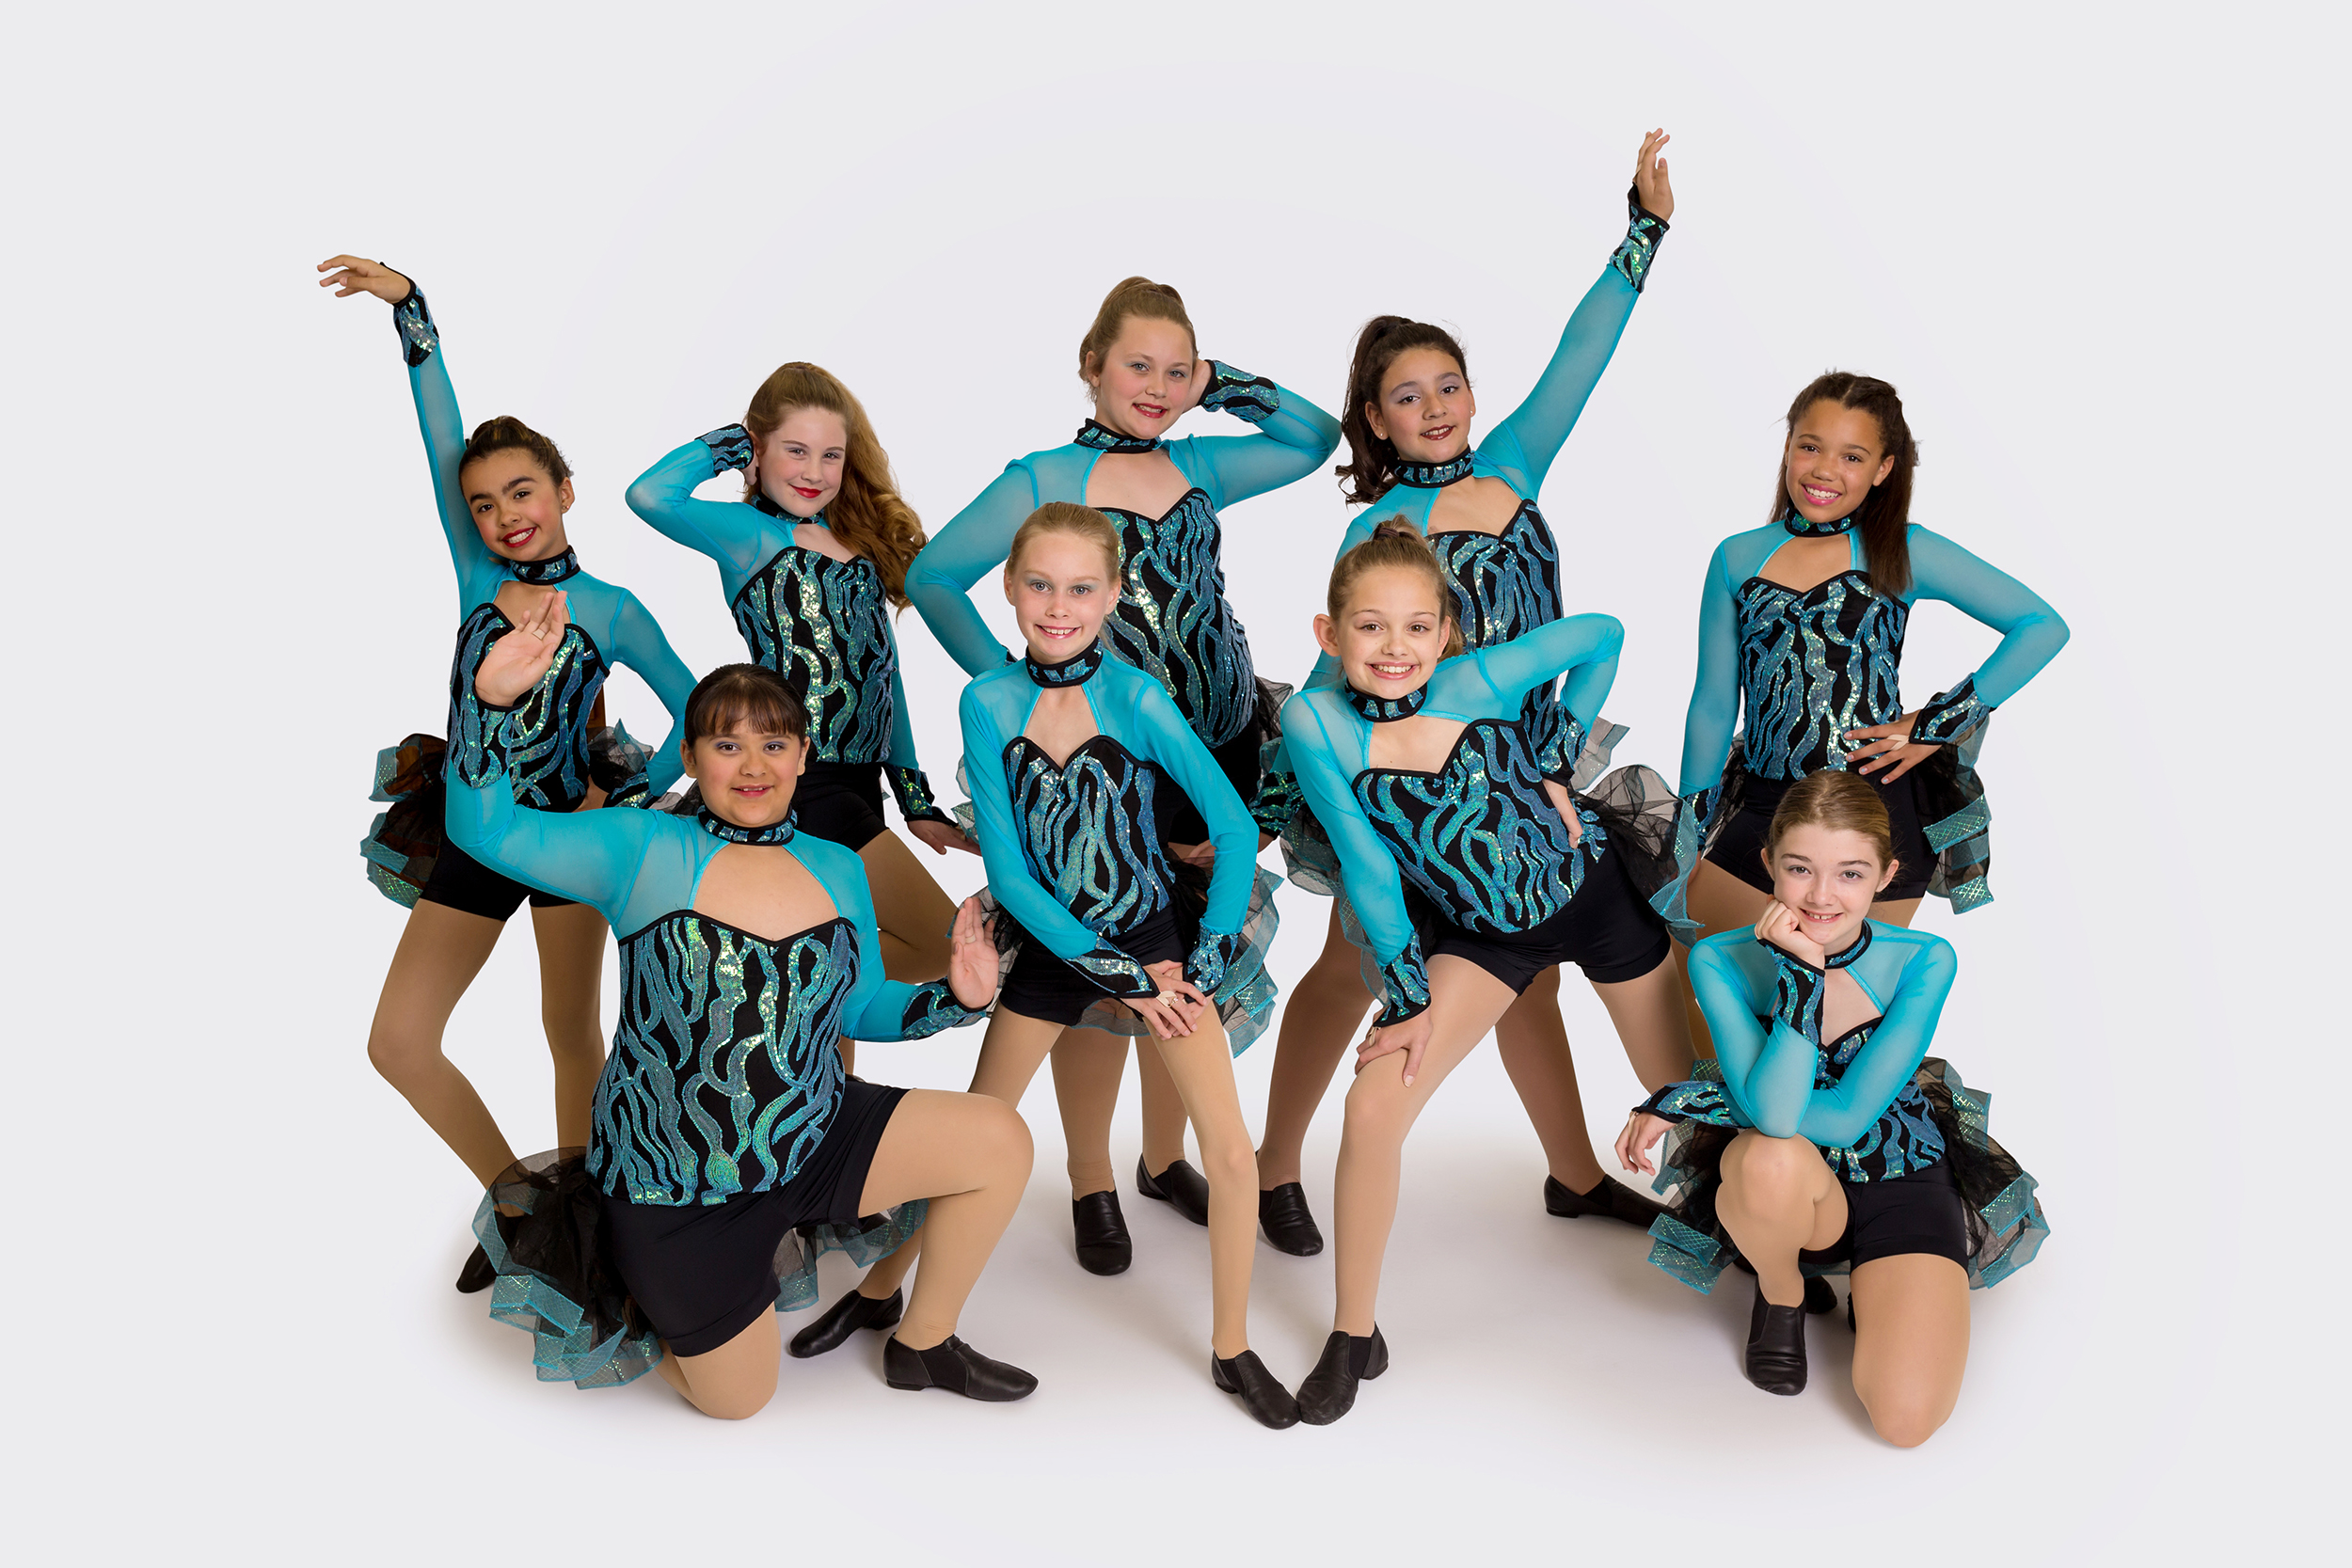 Picture Day Volume Photography - We service groups of all sizes from school extracurricular groups and teams to dance studios and club sports teams. Typical picture day pricing in which parents order photo packages is used.